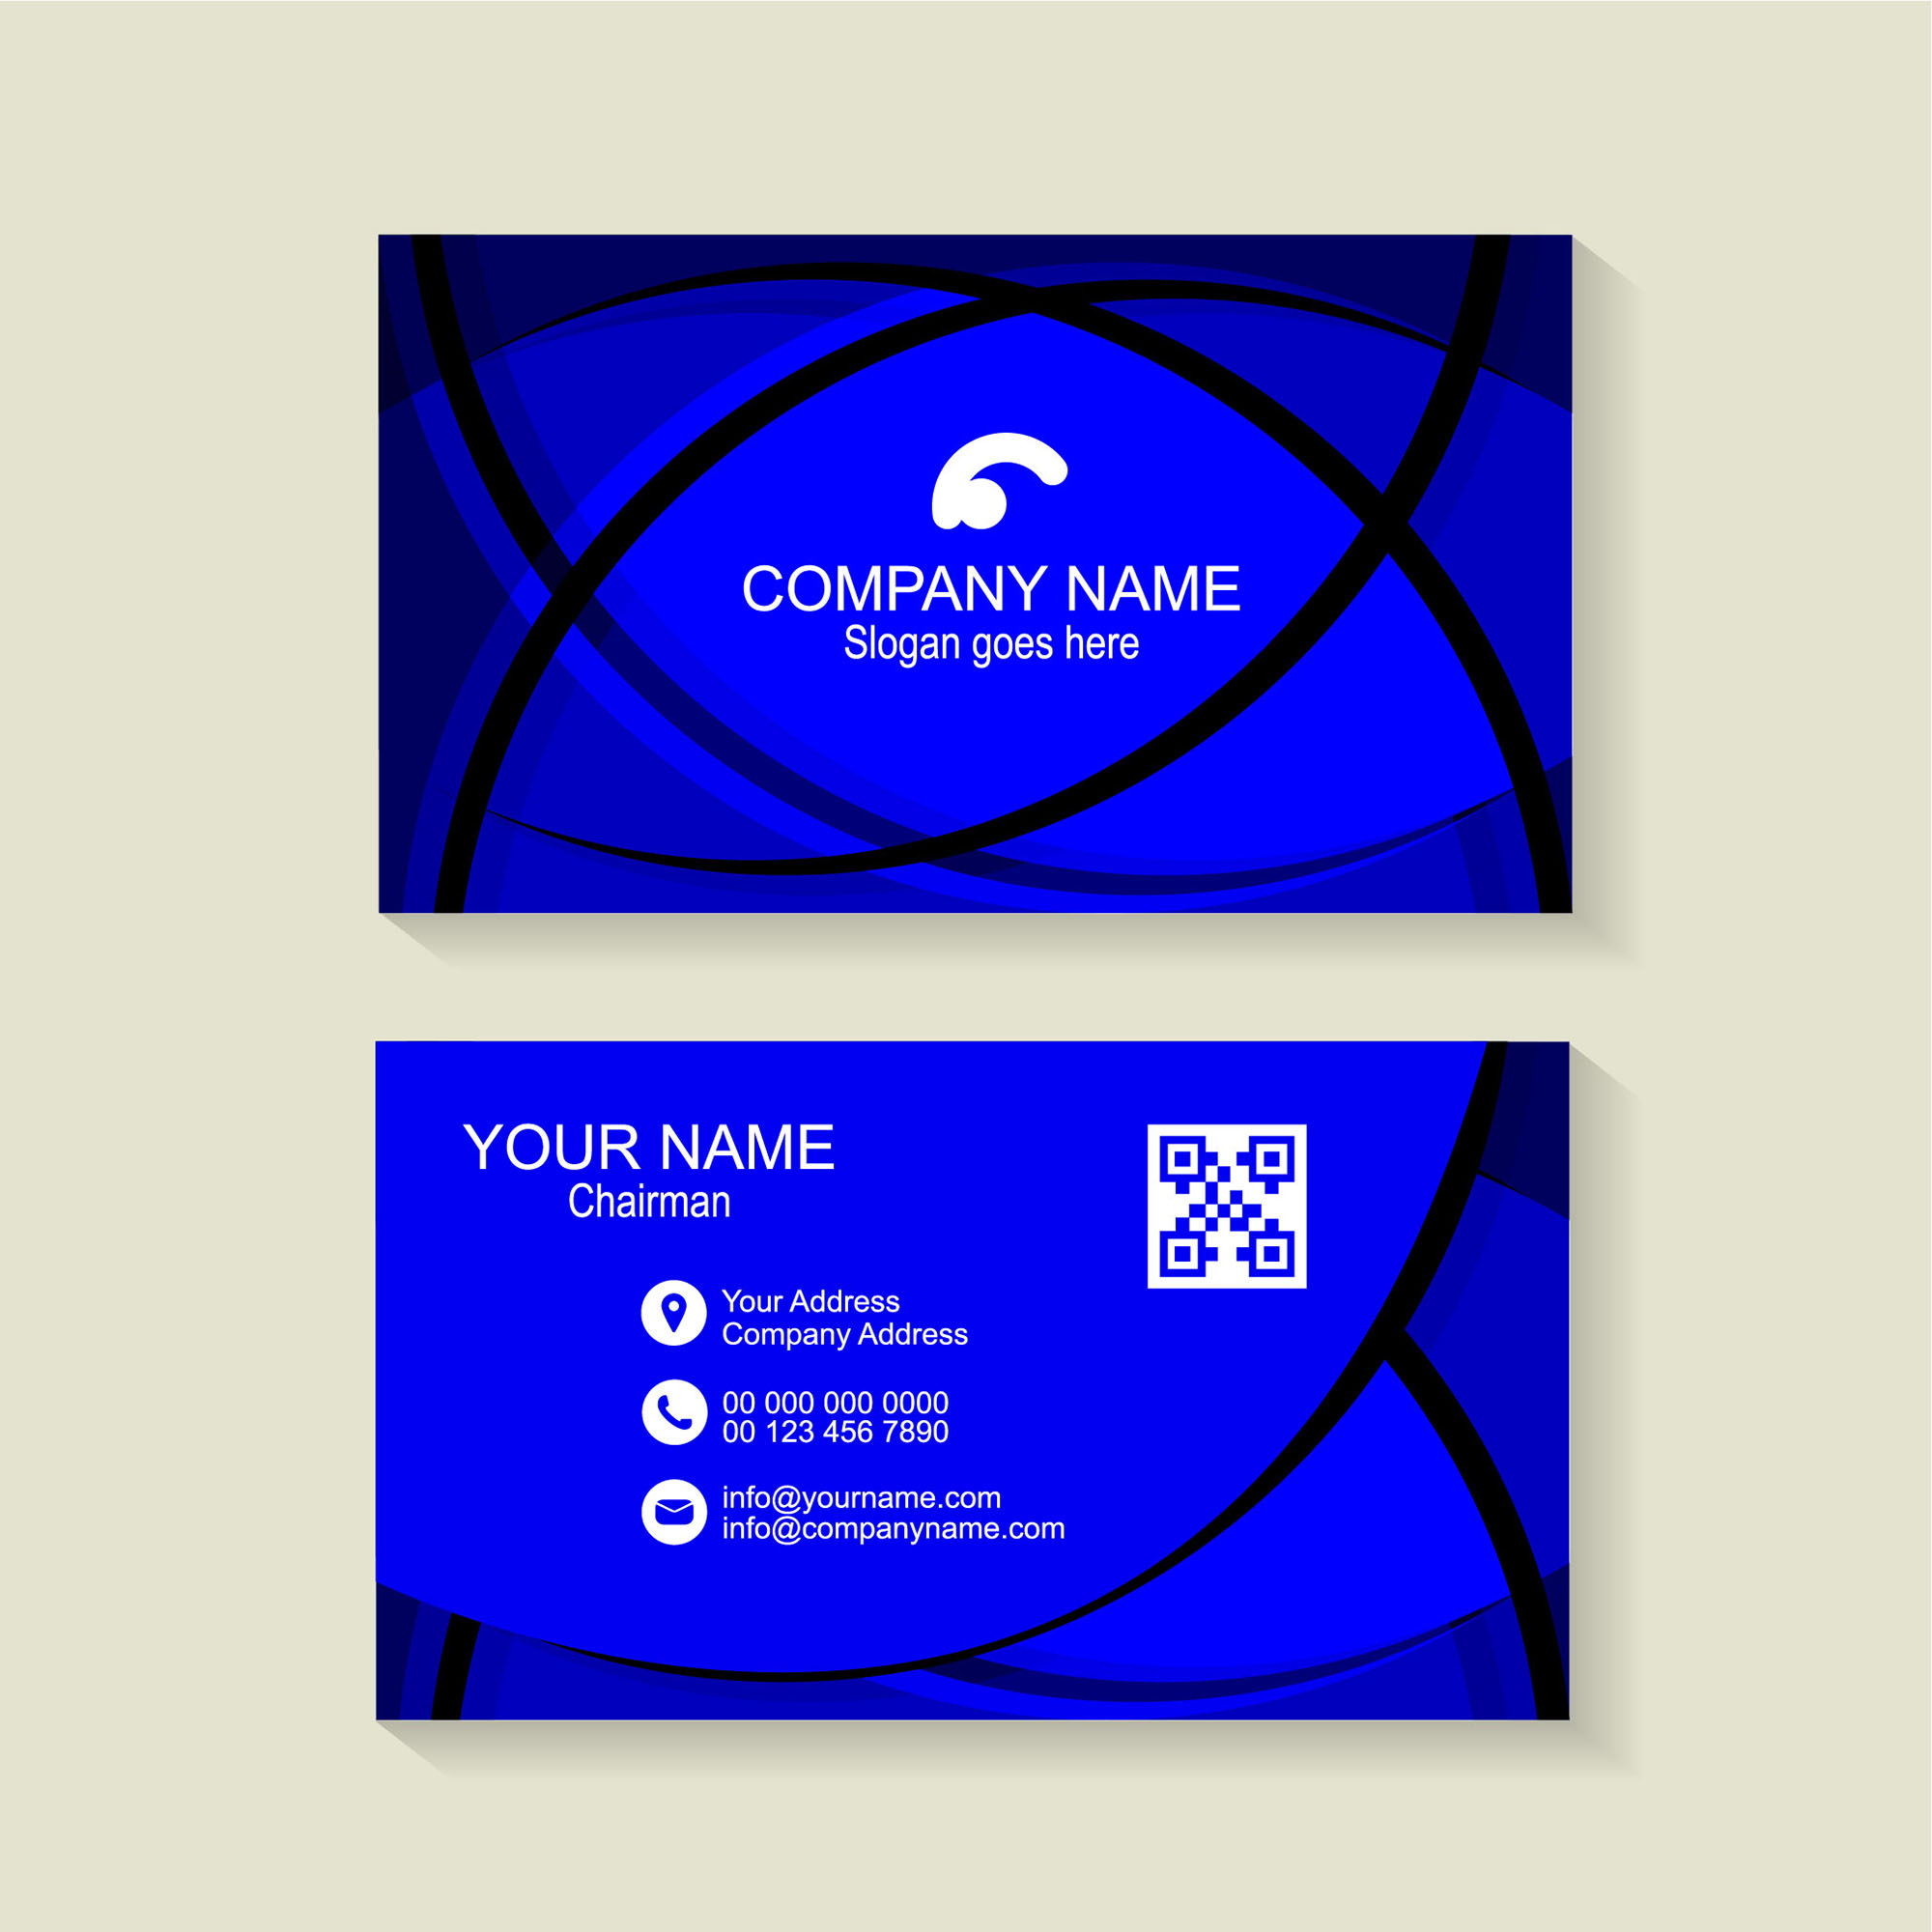 Blue business card background free download wisxi business card business cards business card design business card template design templates cheaphphosting